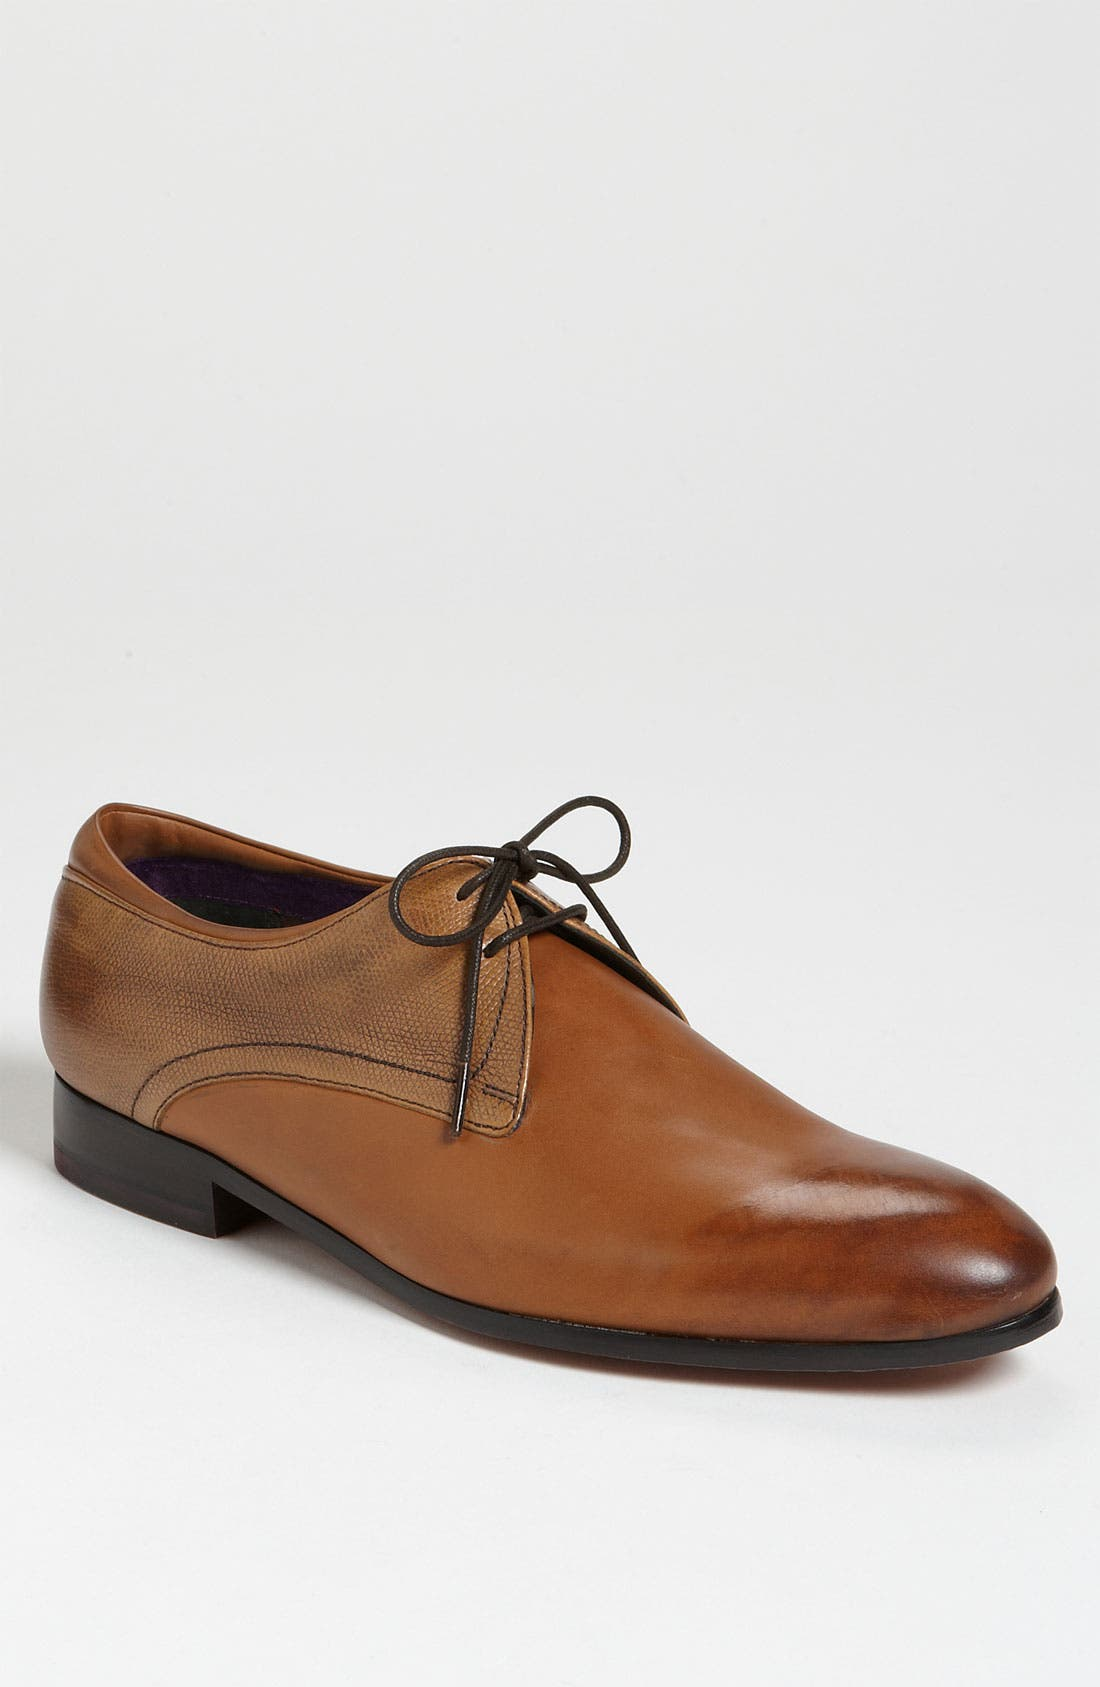 Alternate Image 1 Selected - Ted Baker London 'Fid' Oxford